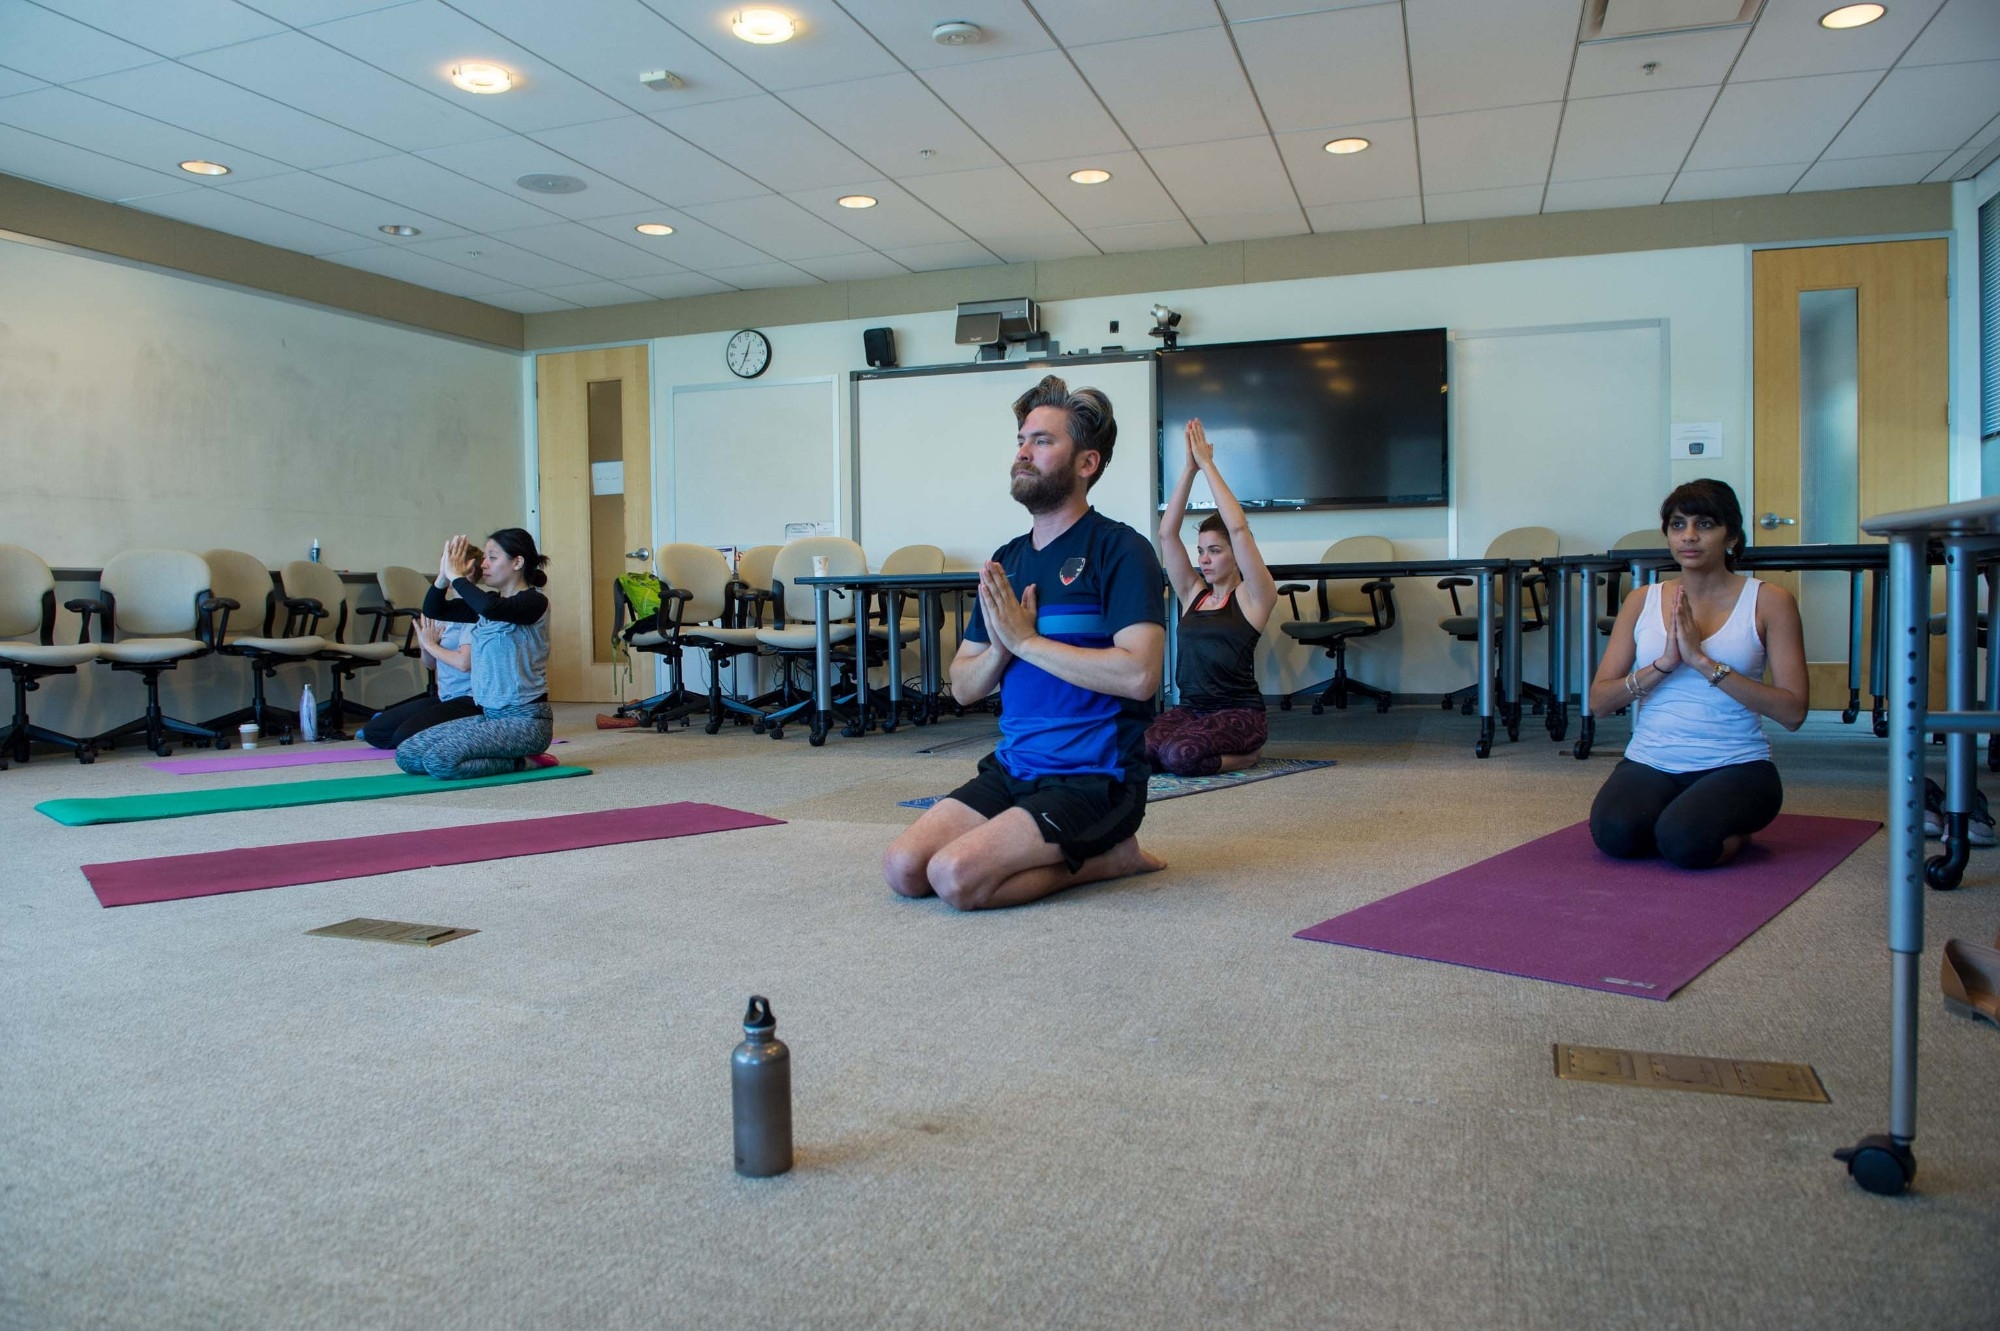 Pardee RAND Mental Health Week 2018, p201805_05, activities, yoga, tai chi, pet therapy, crafts, music, erin duffy, juliana chen-peraza, cameron wright, meghan franco, karishma patel